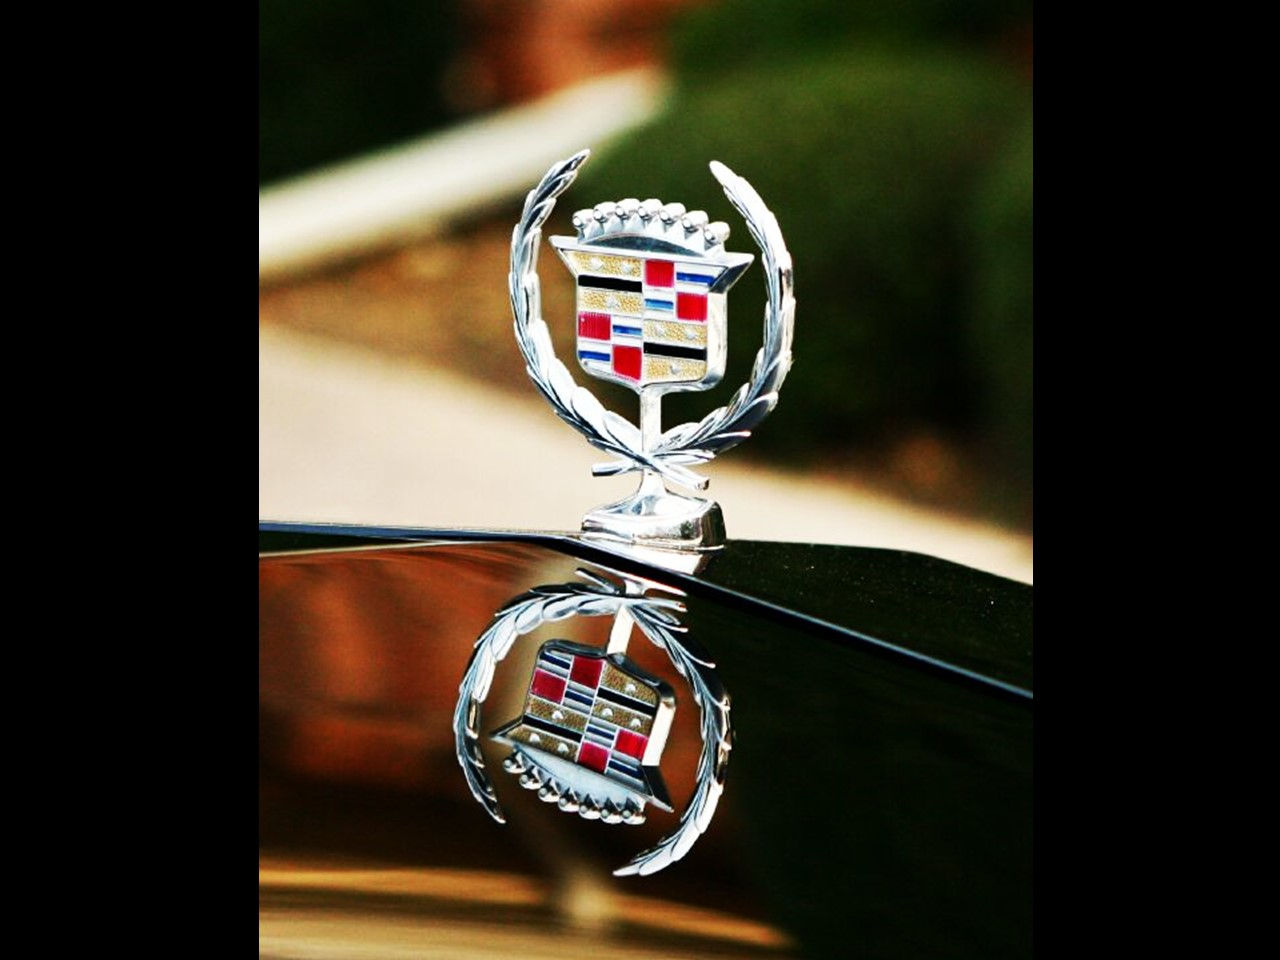 Cadillac Wreath and Crest